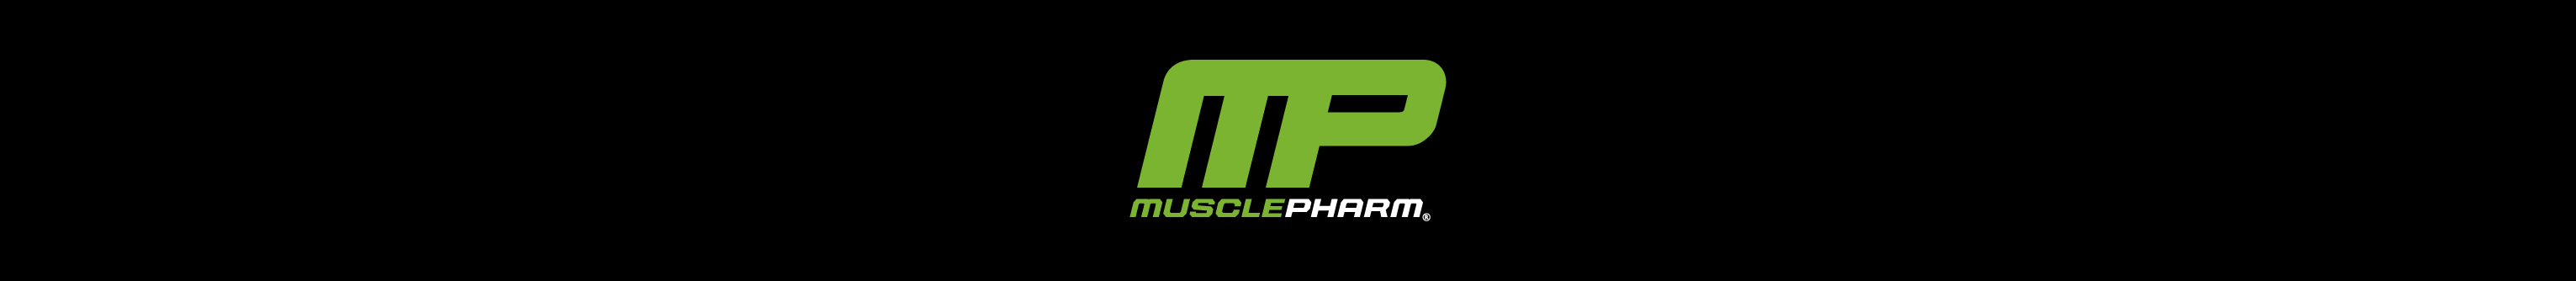 MusclePharm Protein Powder Pre Workout Supplements